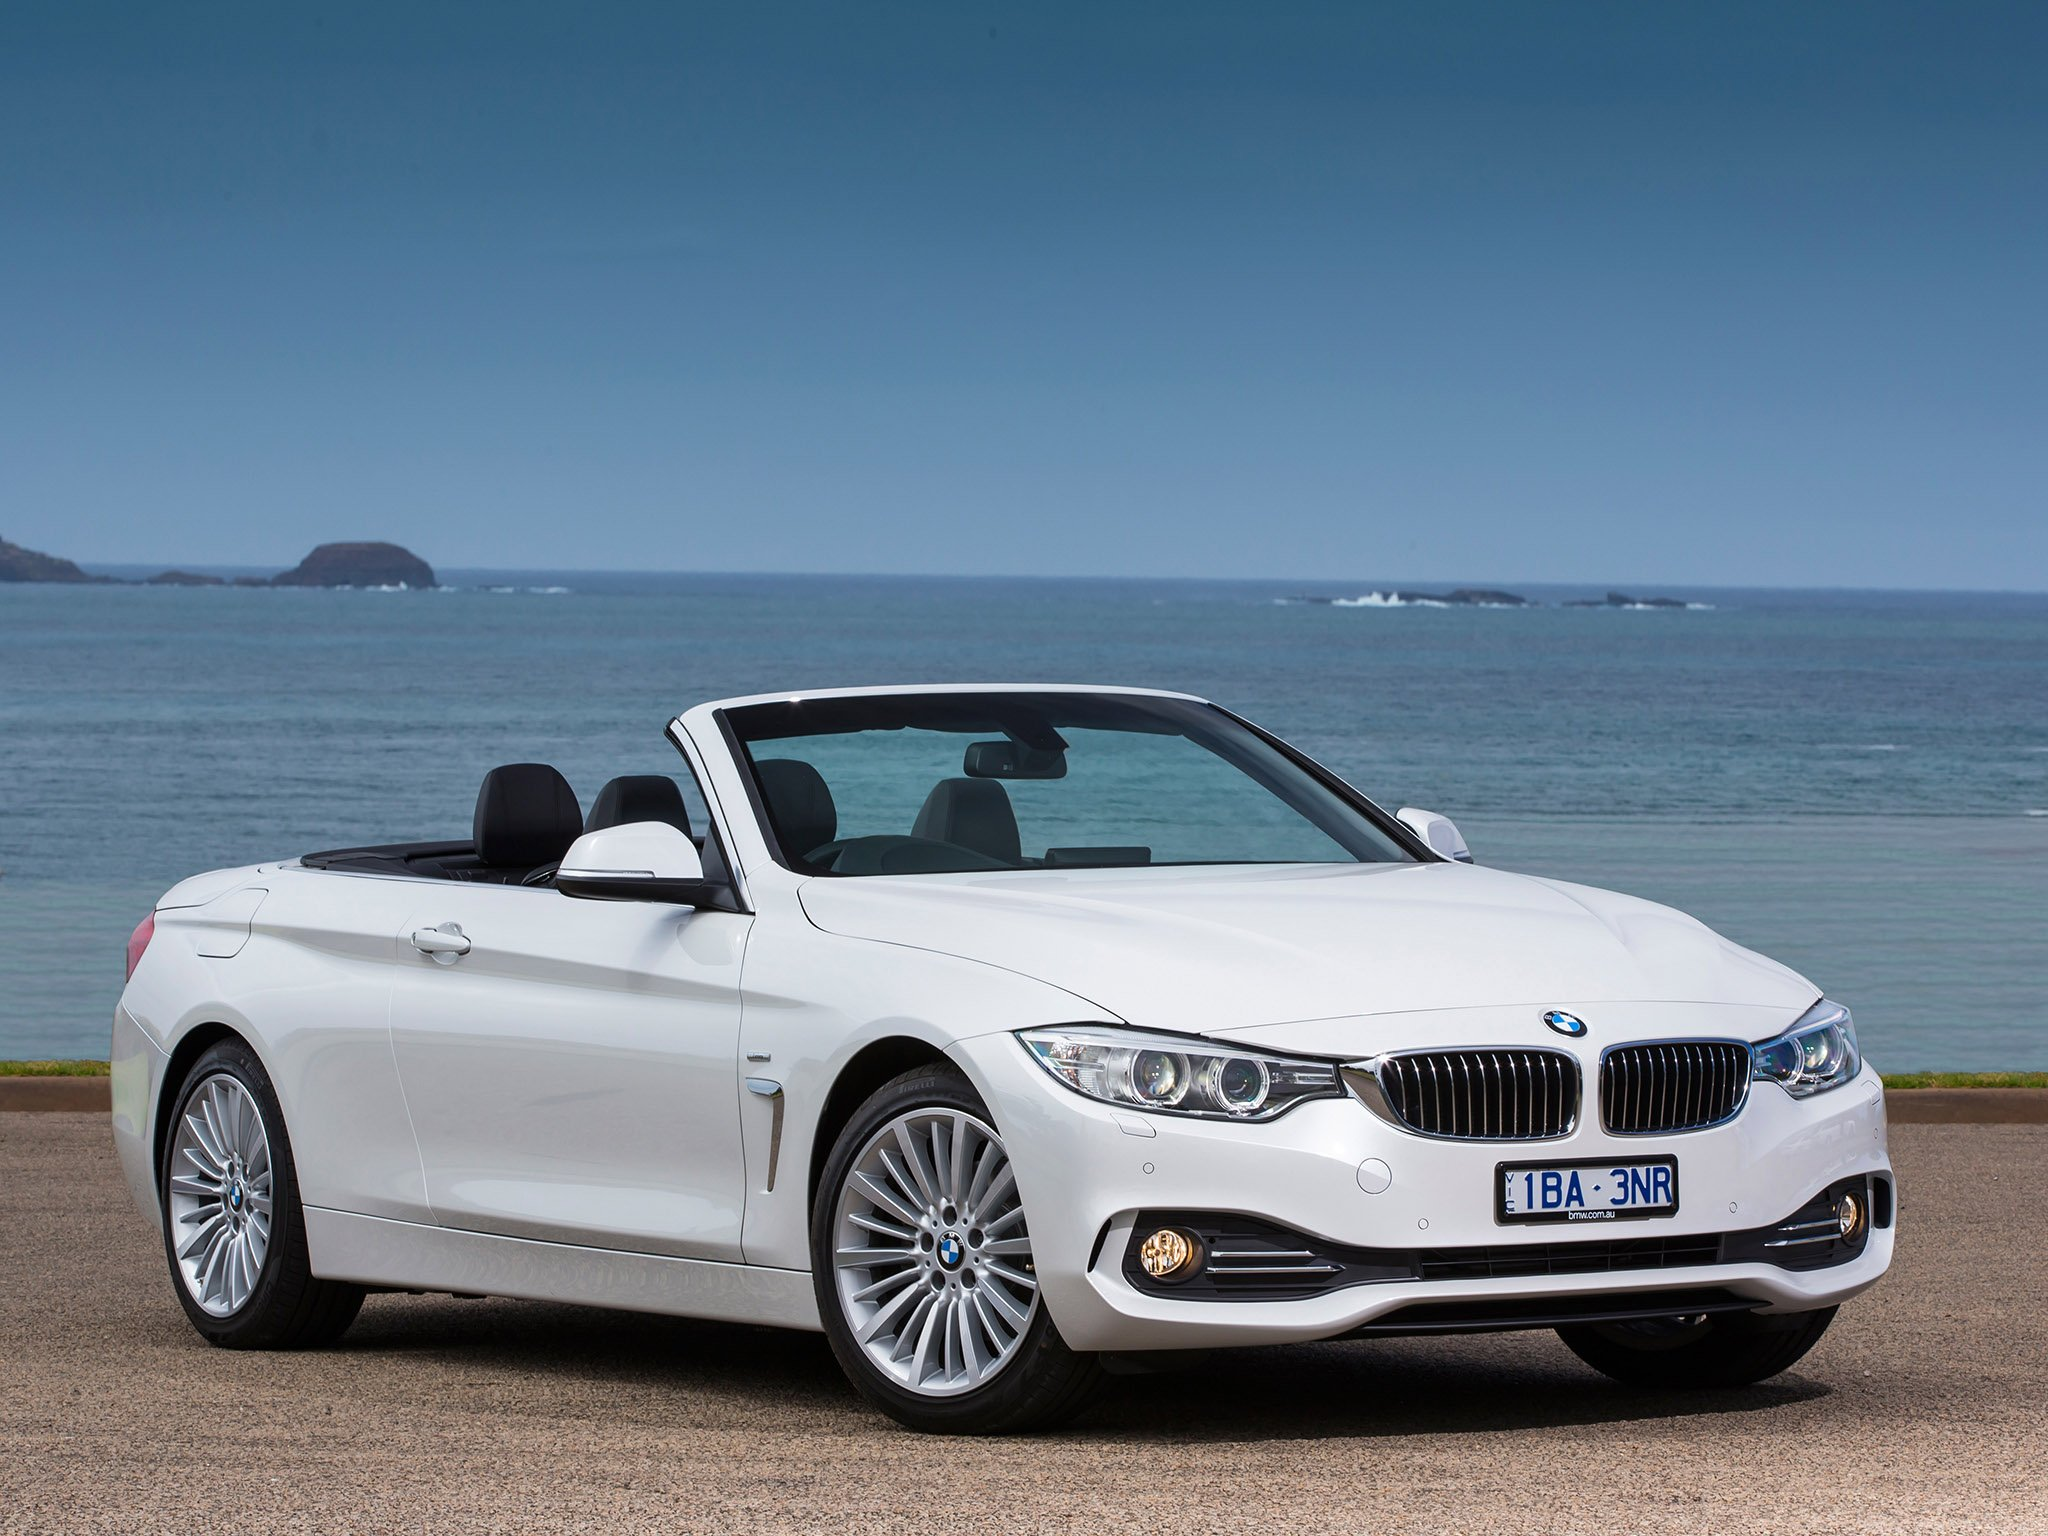 bmw 420d cabrio bmw 420d cabrio 2016 youtube bmw 4 series 420d cabrio luxury line wallpaper. Black Bedroom Furniture Sets. Home Design Ideas